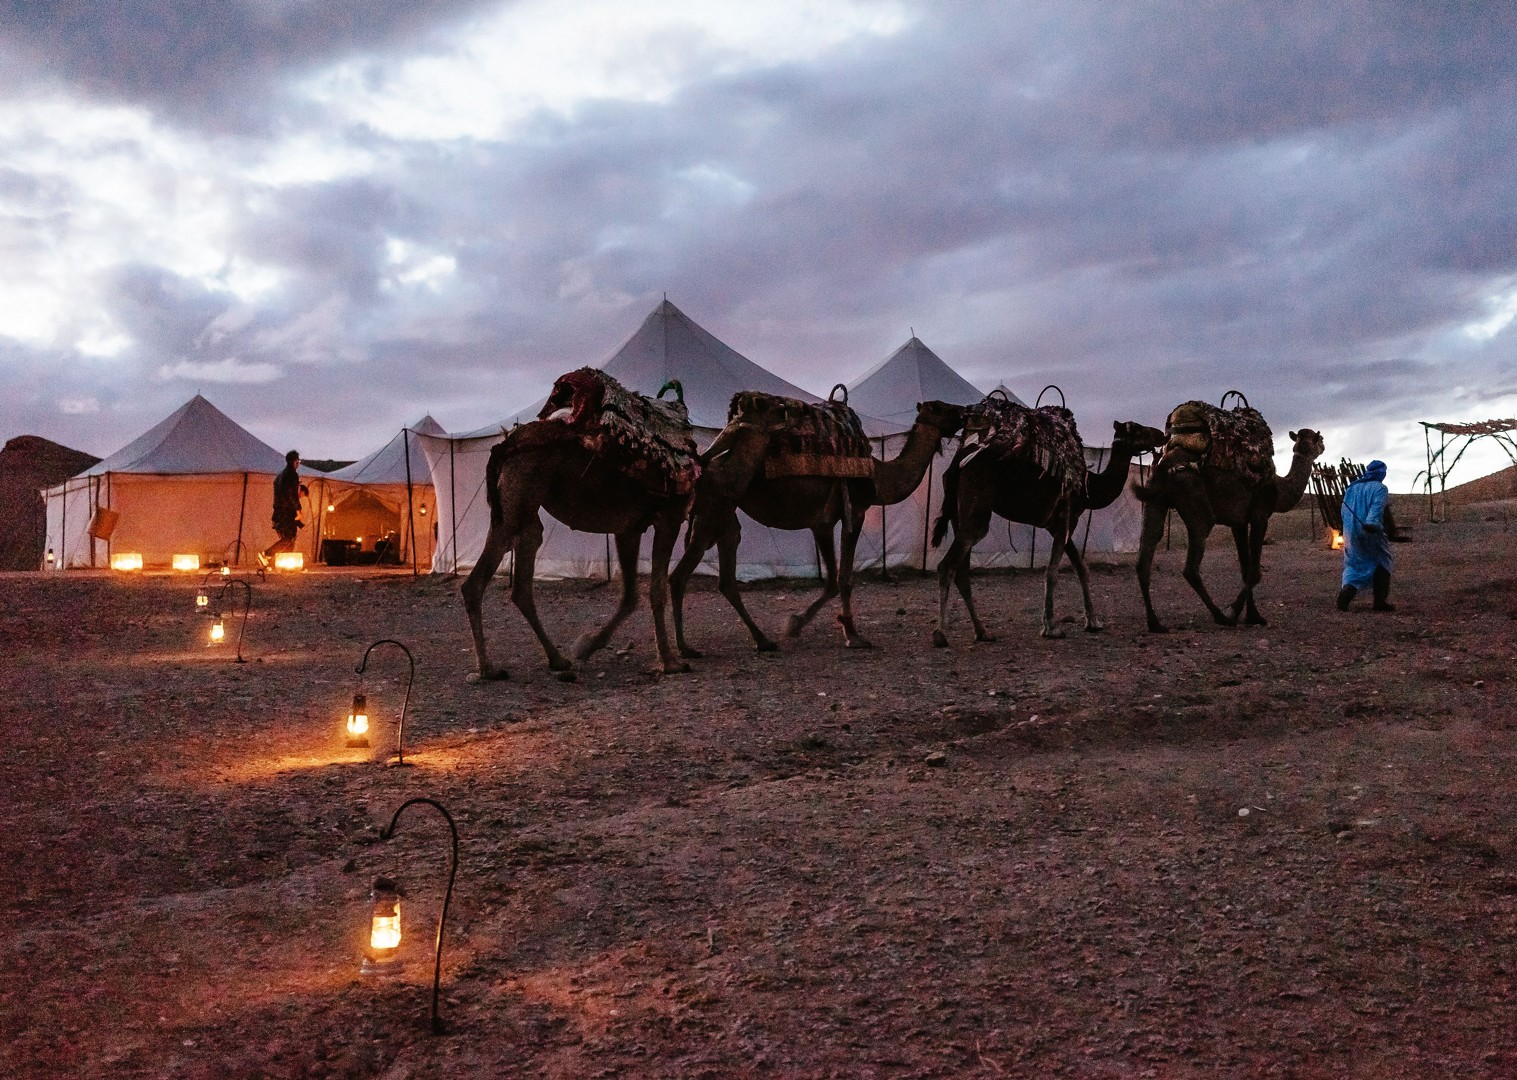 Family-Cycling-Holiday-Morocco-Desert-Mountains-Coast-Camels-ride-a-camel-desert - Morocco - Desert, Mountains and Coast - Family Cycling